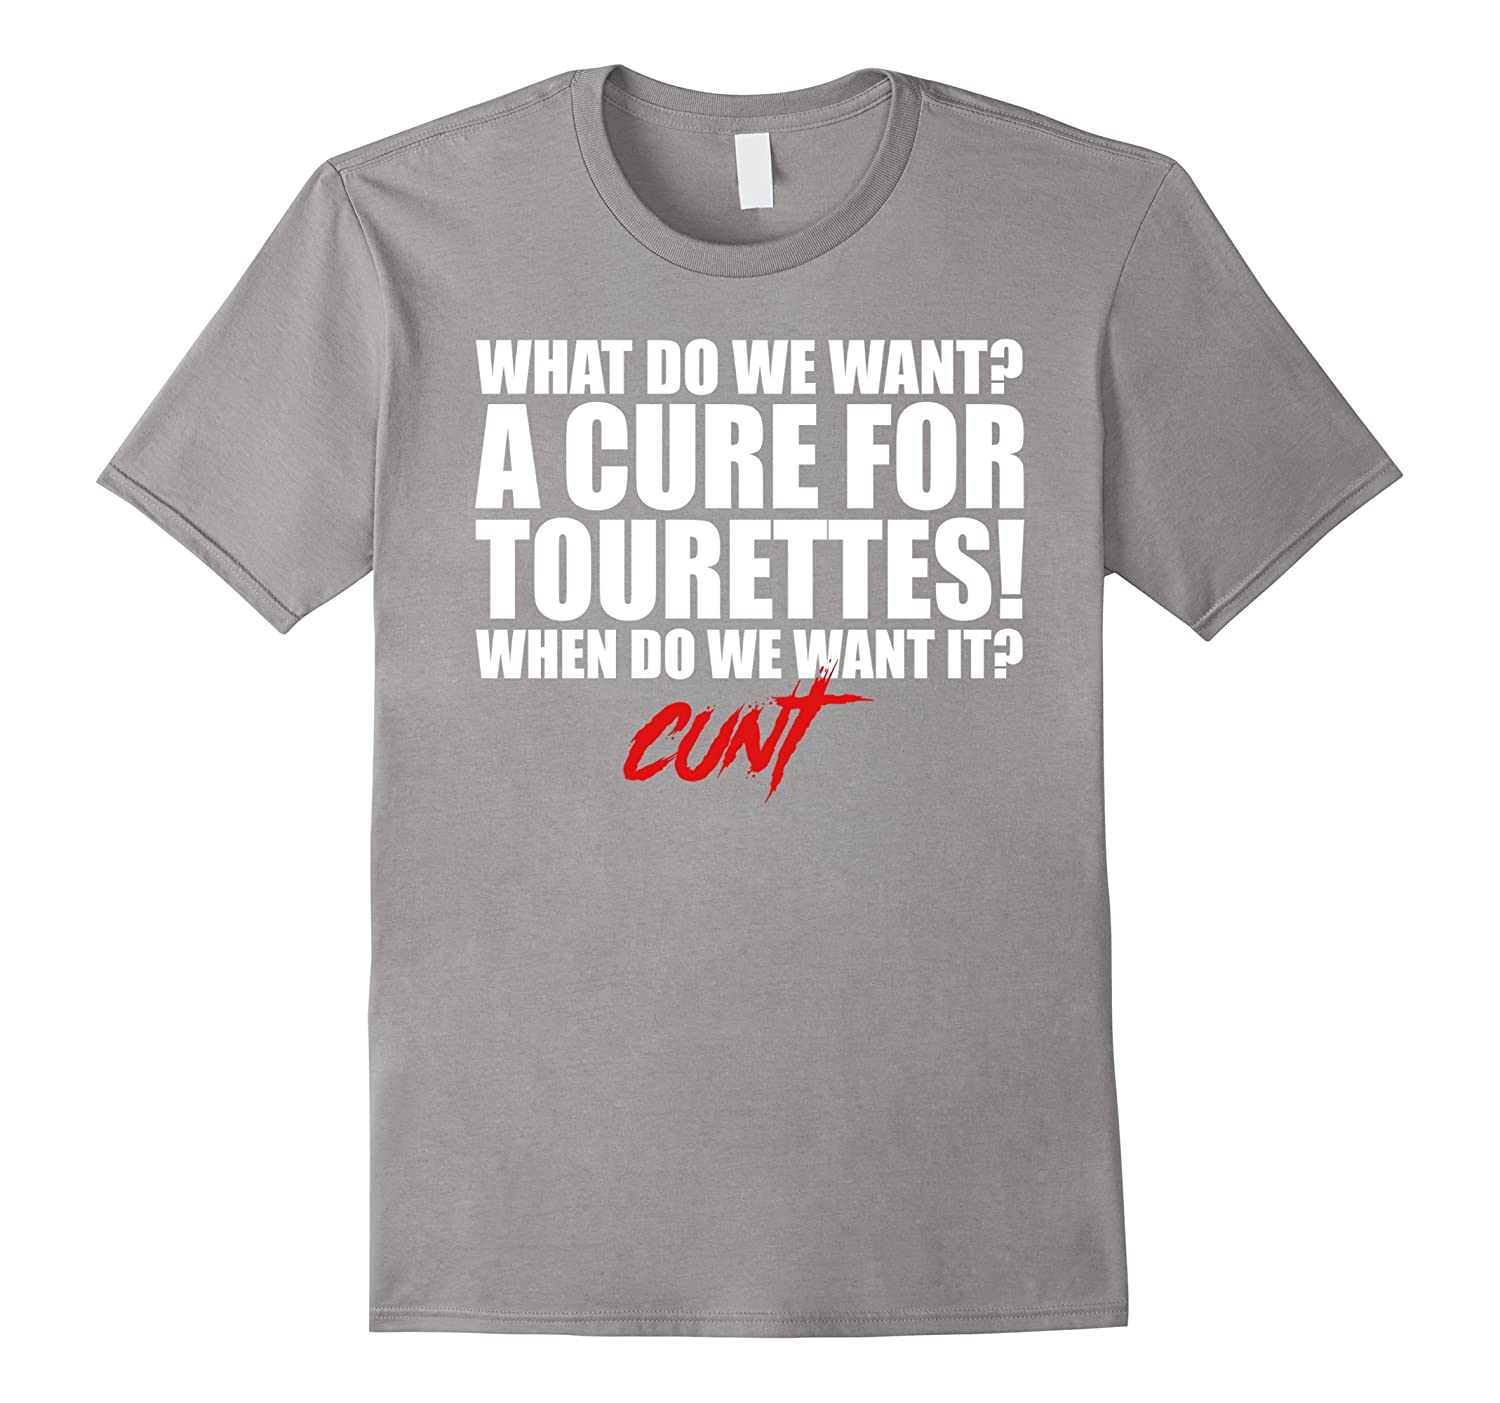 6d52bff0bf A Cure For Tourettes T-shirt What Do We Want – Febaaccessories.com